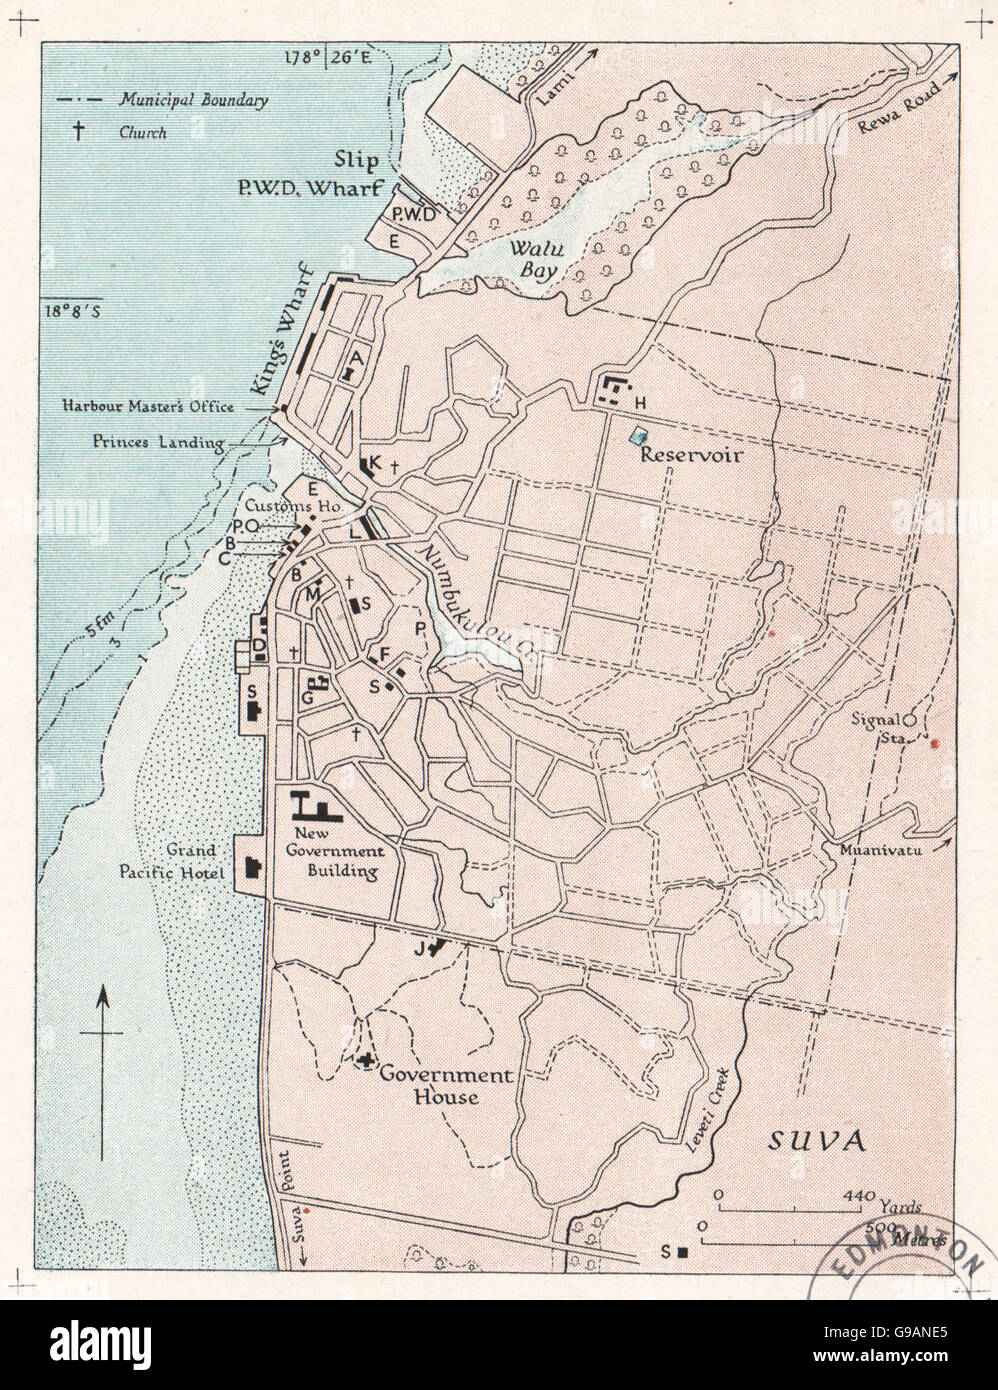 FIJI: Suva. WW2 ROYAL NAVY INTELLIGENCE MAP, 1944 - Stock Image